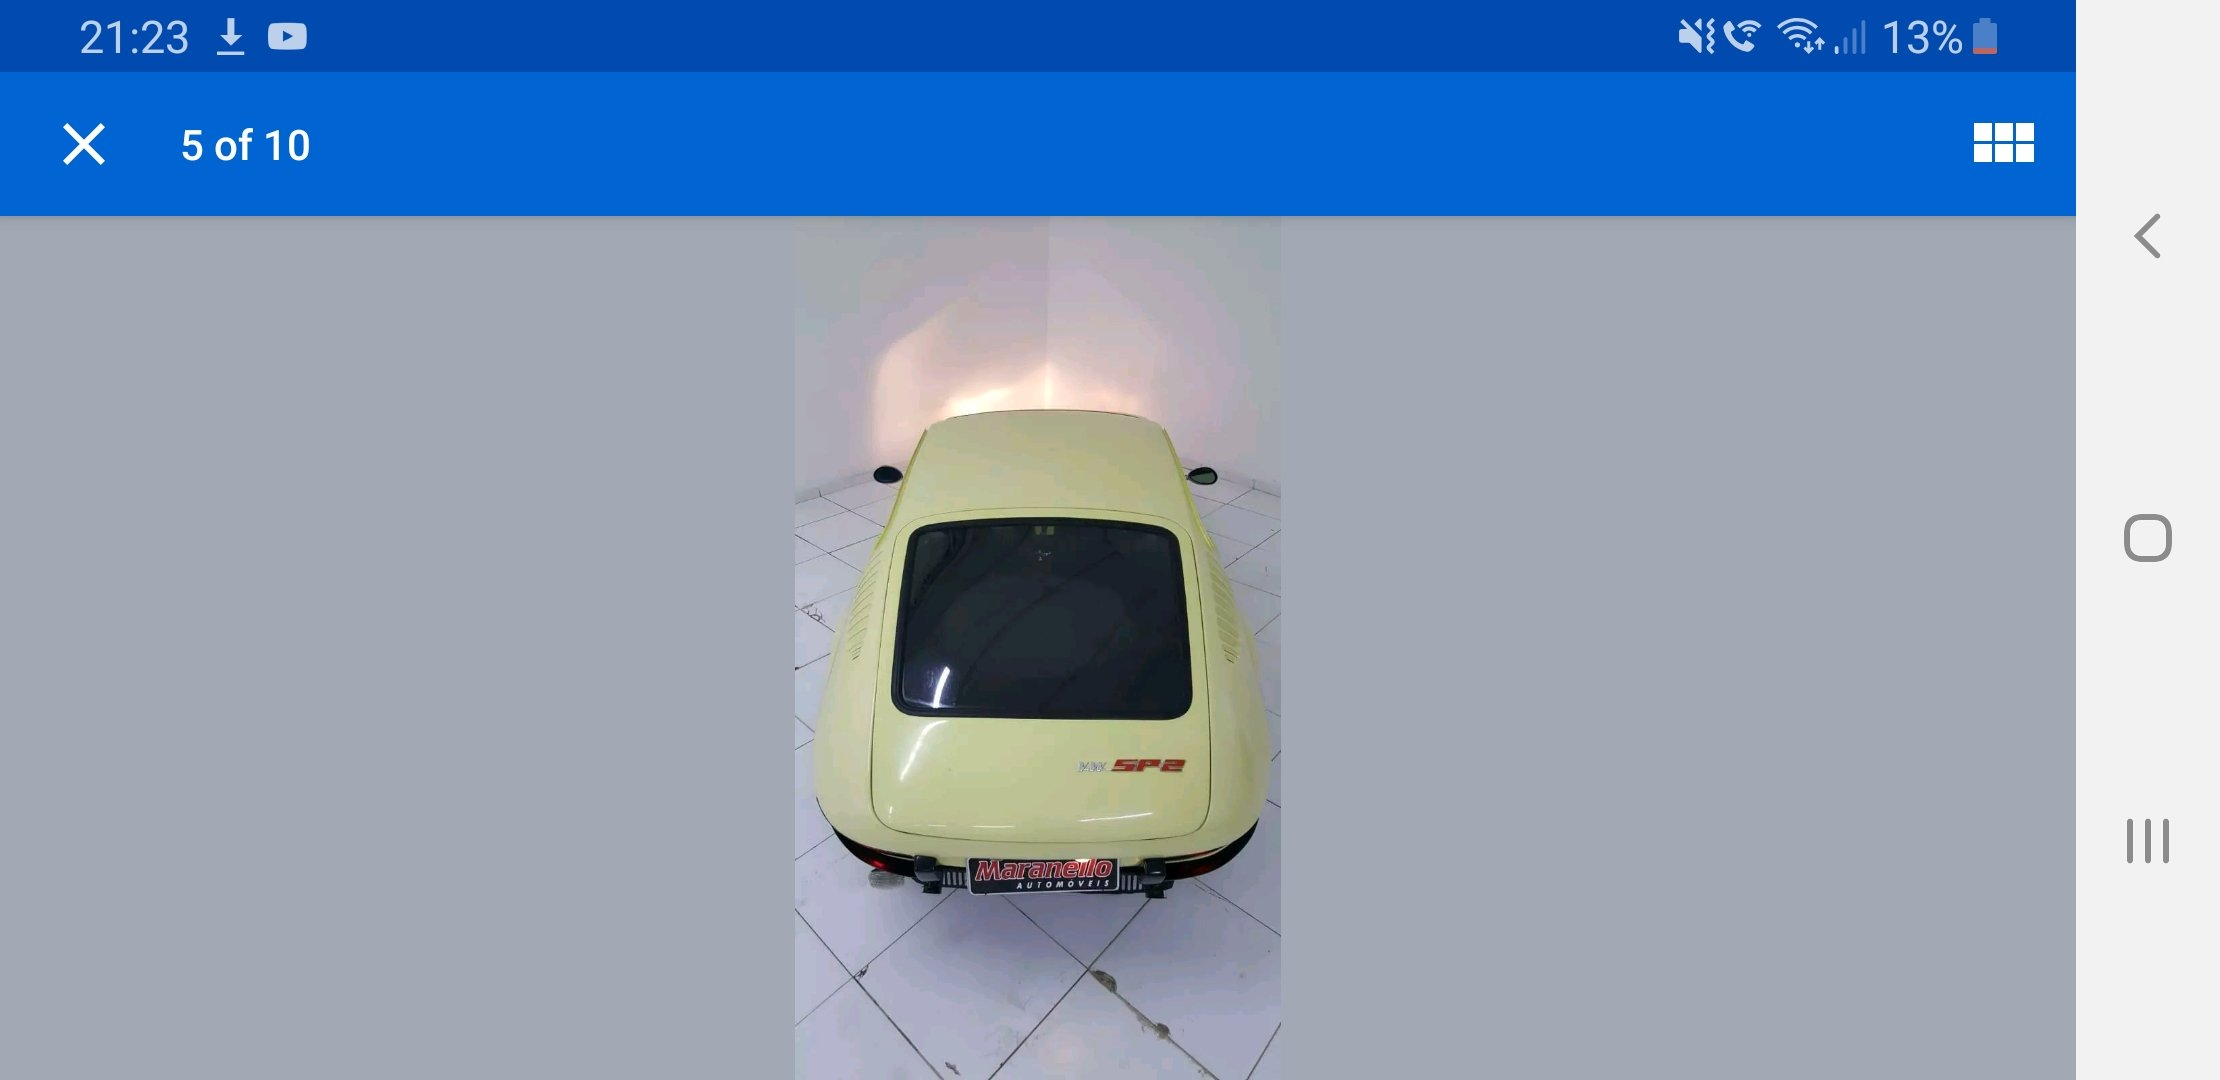 VW SP2   1973 For Sale (picture 3 of 6)